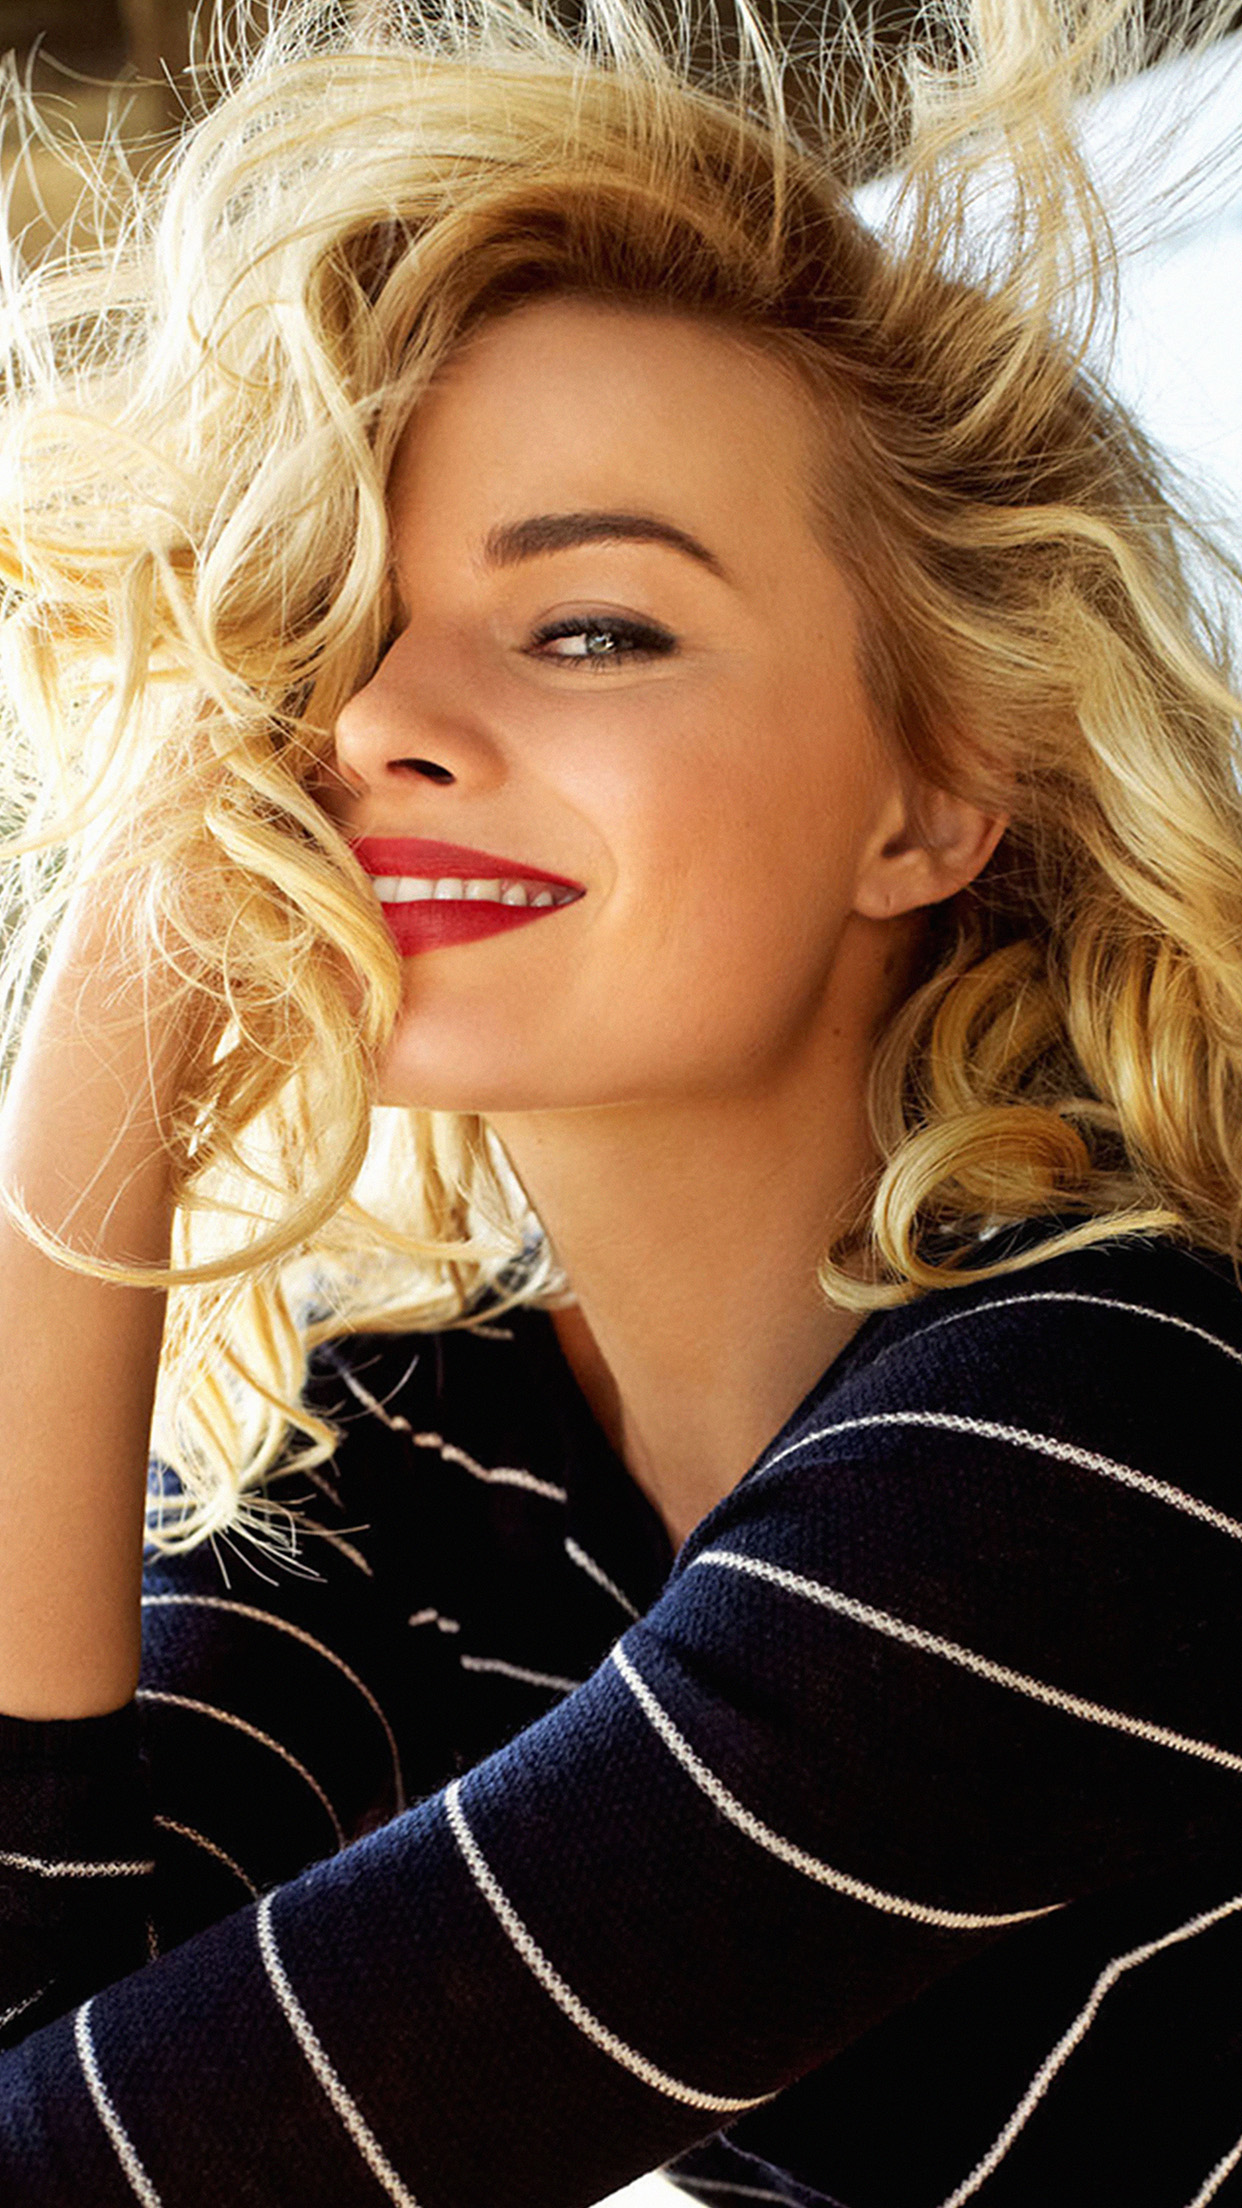 I love papers hk26 margot robbie smile celebrity photo - Celeb wallpapers ...